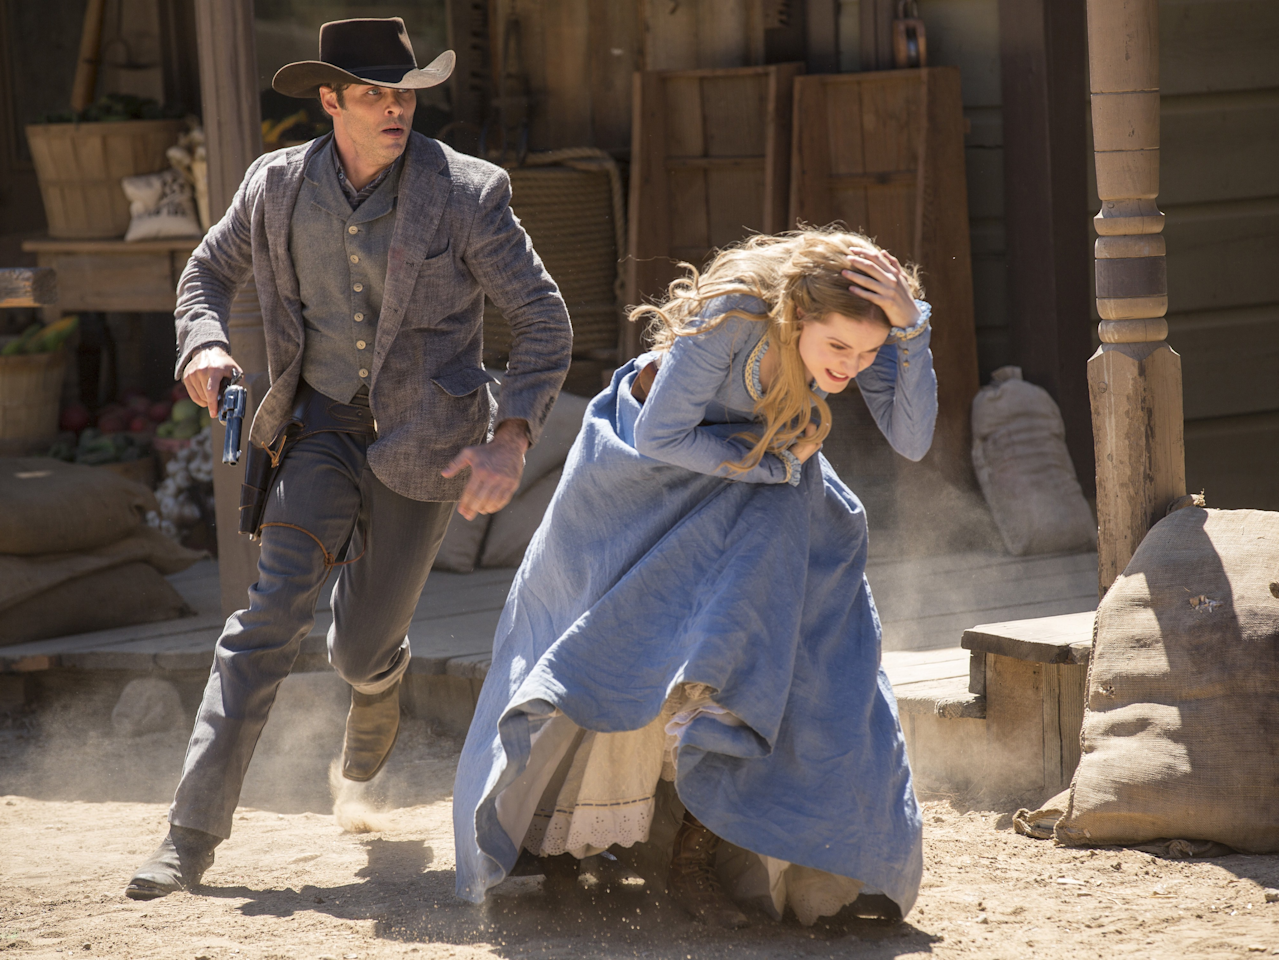 "<p>Cost Per Episode: $8 million +<br />""Westworld's"" pilot alone cost around $25 million to make so it's no surprise the western/sci-fi/drama will keep with its high ticket TV-making, but to the tune of $8-$10 million per episode for season two. This season will introduce new worlds and theme parks and one of the anticipated realms is <a rel=""nofollow"" href=""https://www.theguardian.com/tv-and-radio/tvandradioblog/2017/oct/05/westworld-season-two-roman-samurai"">speculated</a> to be that of the Samuraiworld. </p>"